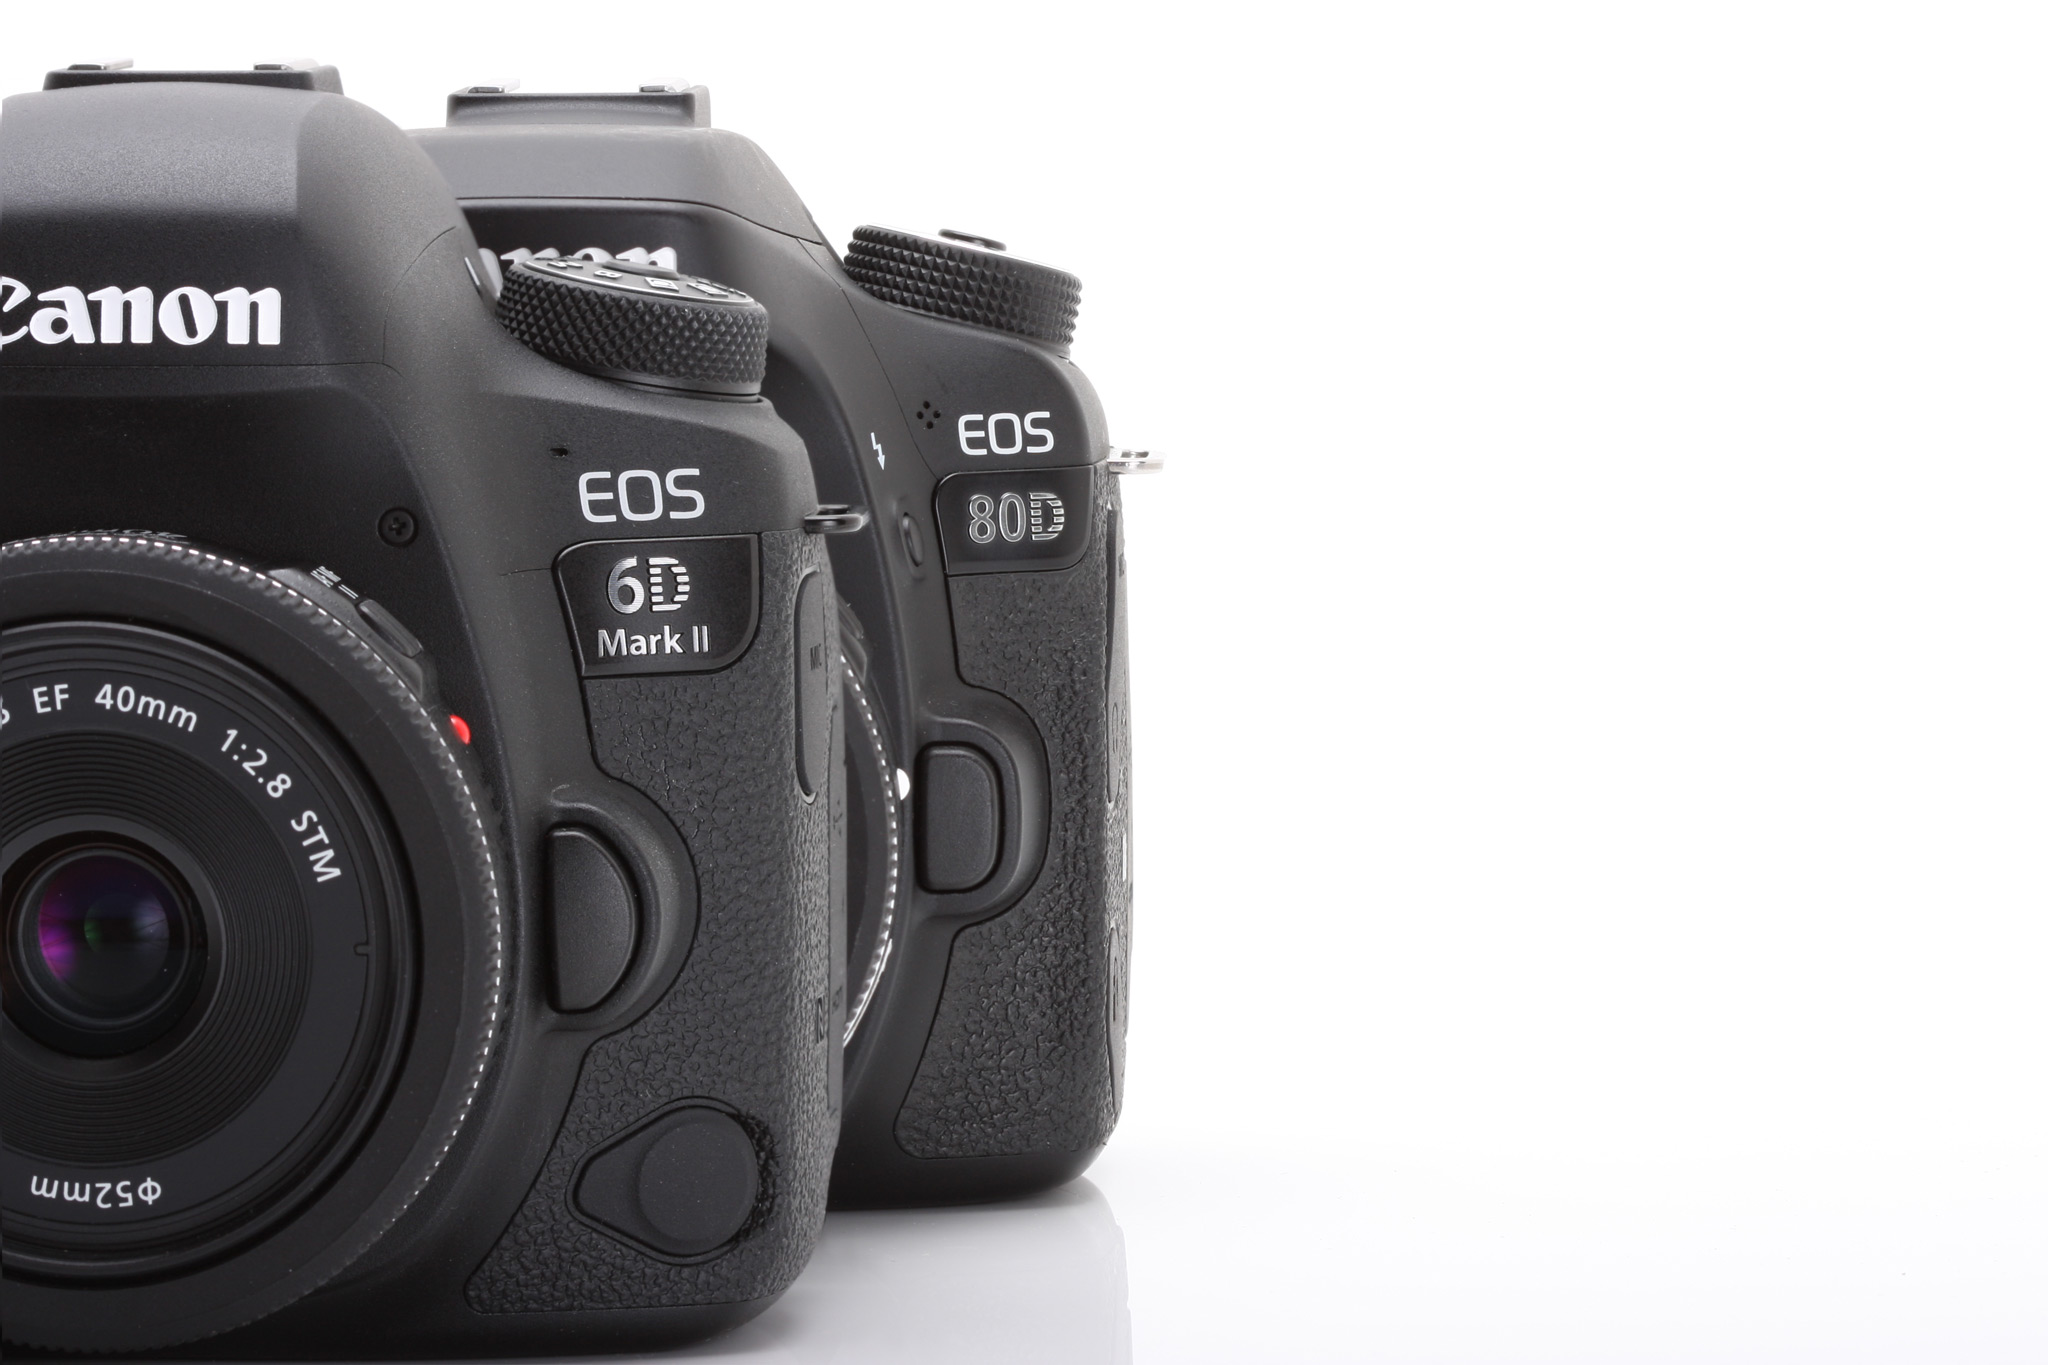 Canon EOS 80D to EOS 6D Mark II: in the light of the review, should ...